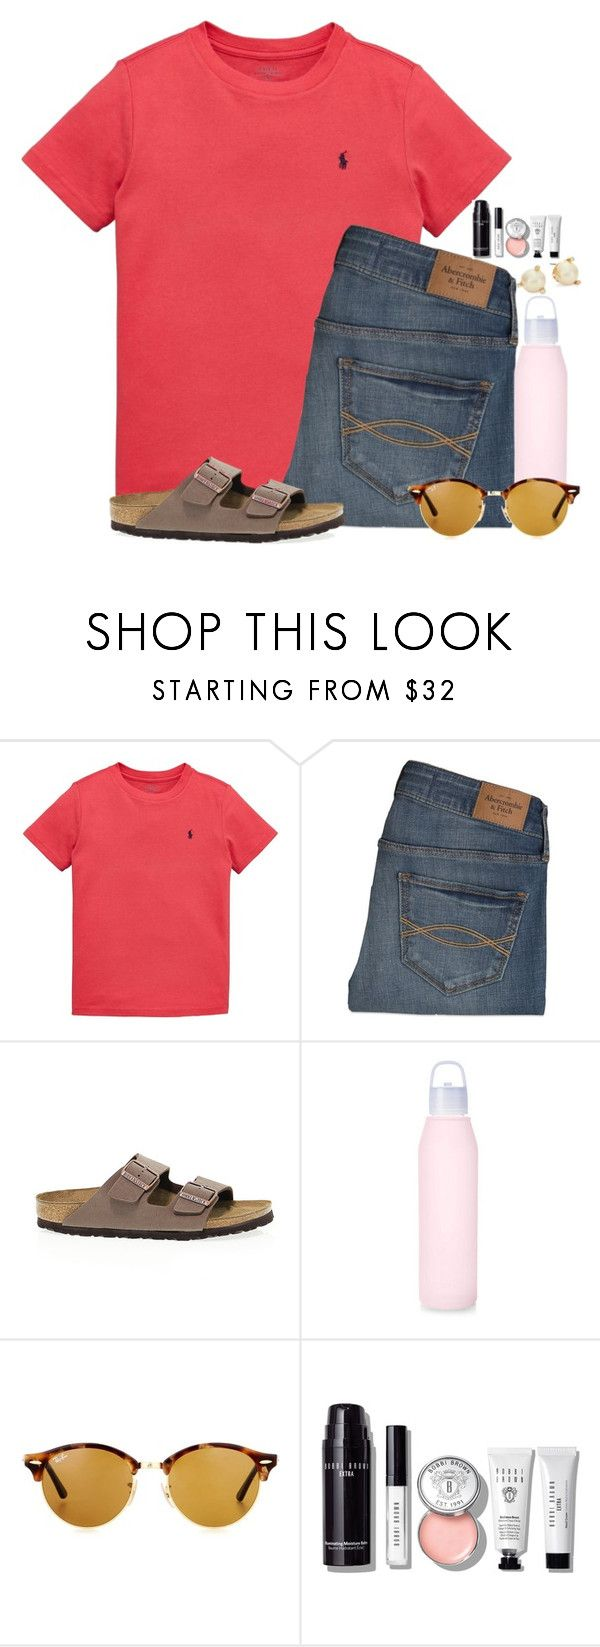 """""""Exact OOTD🍓"""" by flroasburn ❤ liked on Polyvore featuring Ralph Lauren, Abercrombie & Fitch, Birkenstock, Ray-Ban, Bobbi Brown Cosmetics and Kate Spade"""